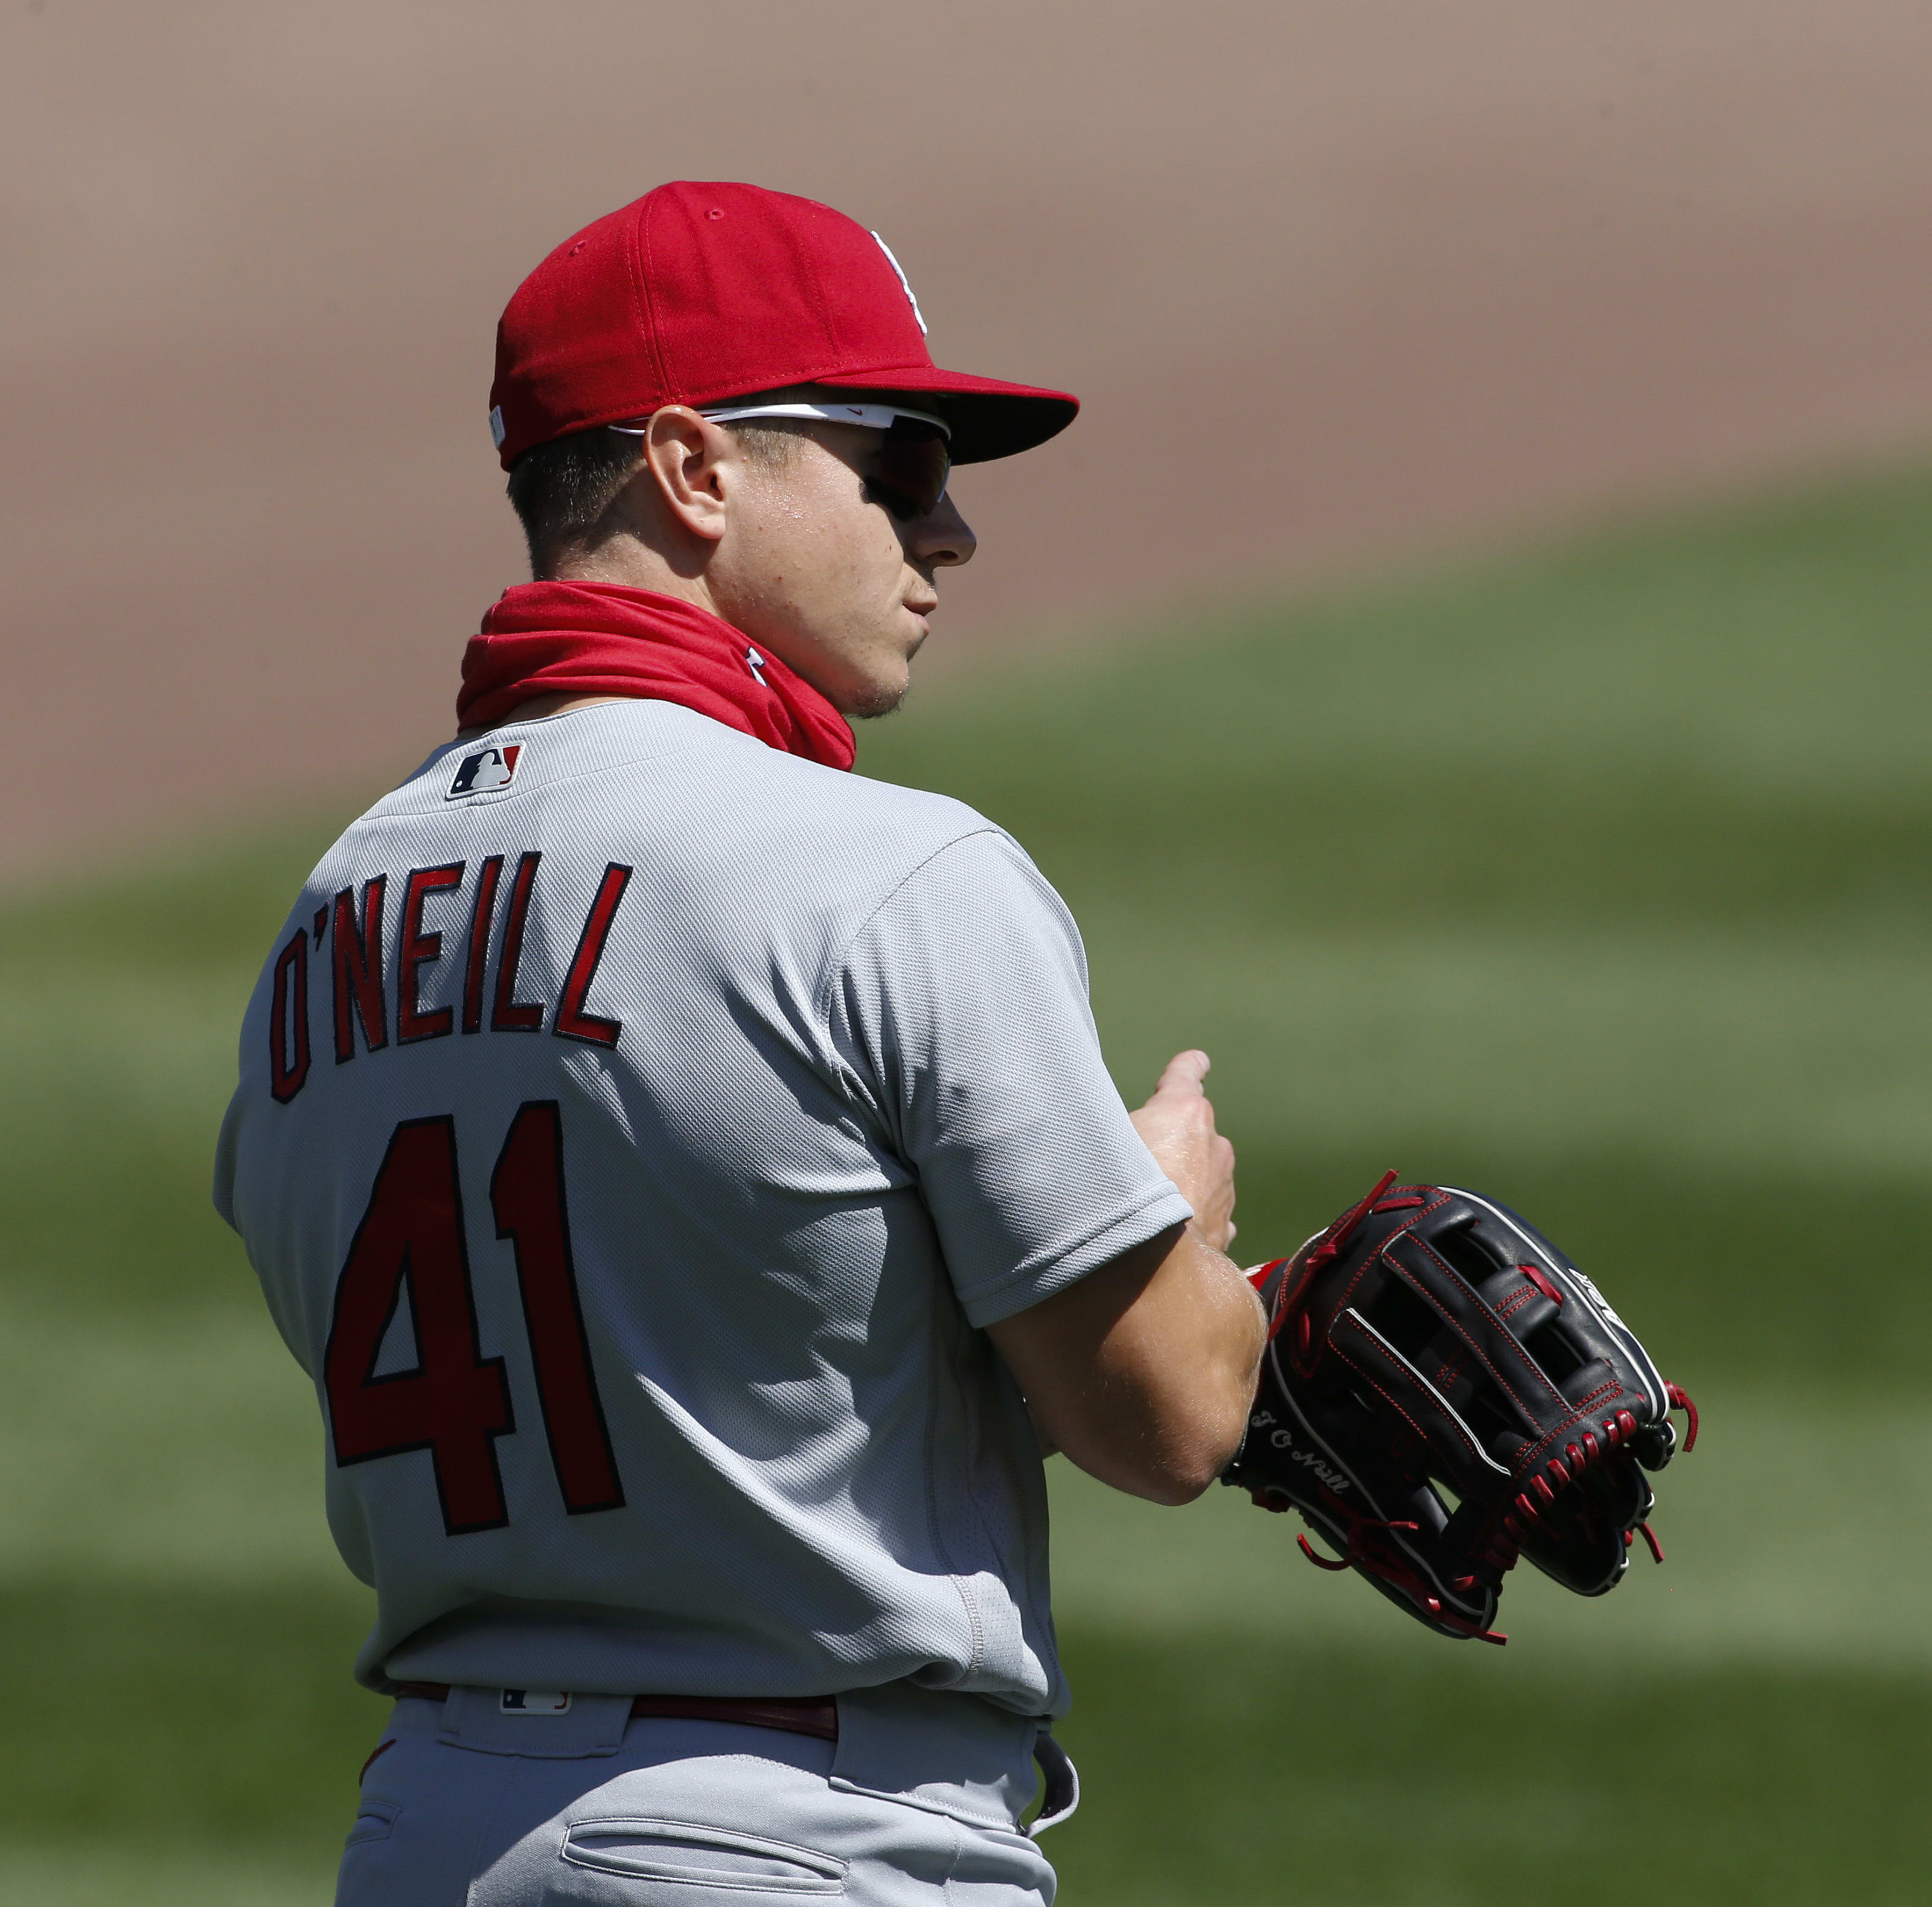 Tyler O'Neill, former Mariners prospect, of the St. Louis Cardinals waits during a game.